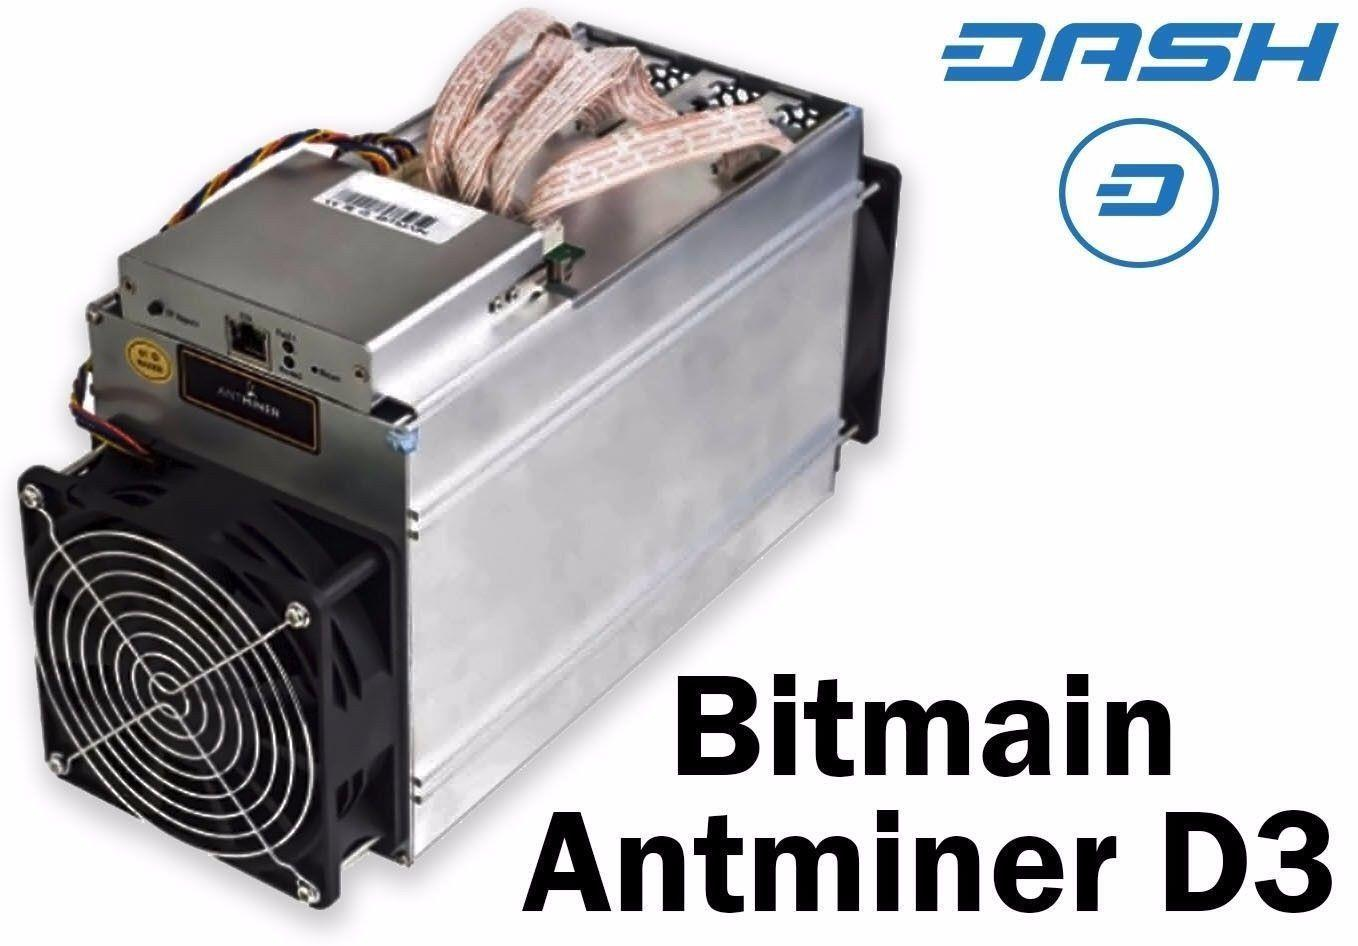 Bitmain Antminer D3 19 3gh S Bitcoin Mining Machine With Psu -